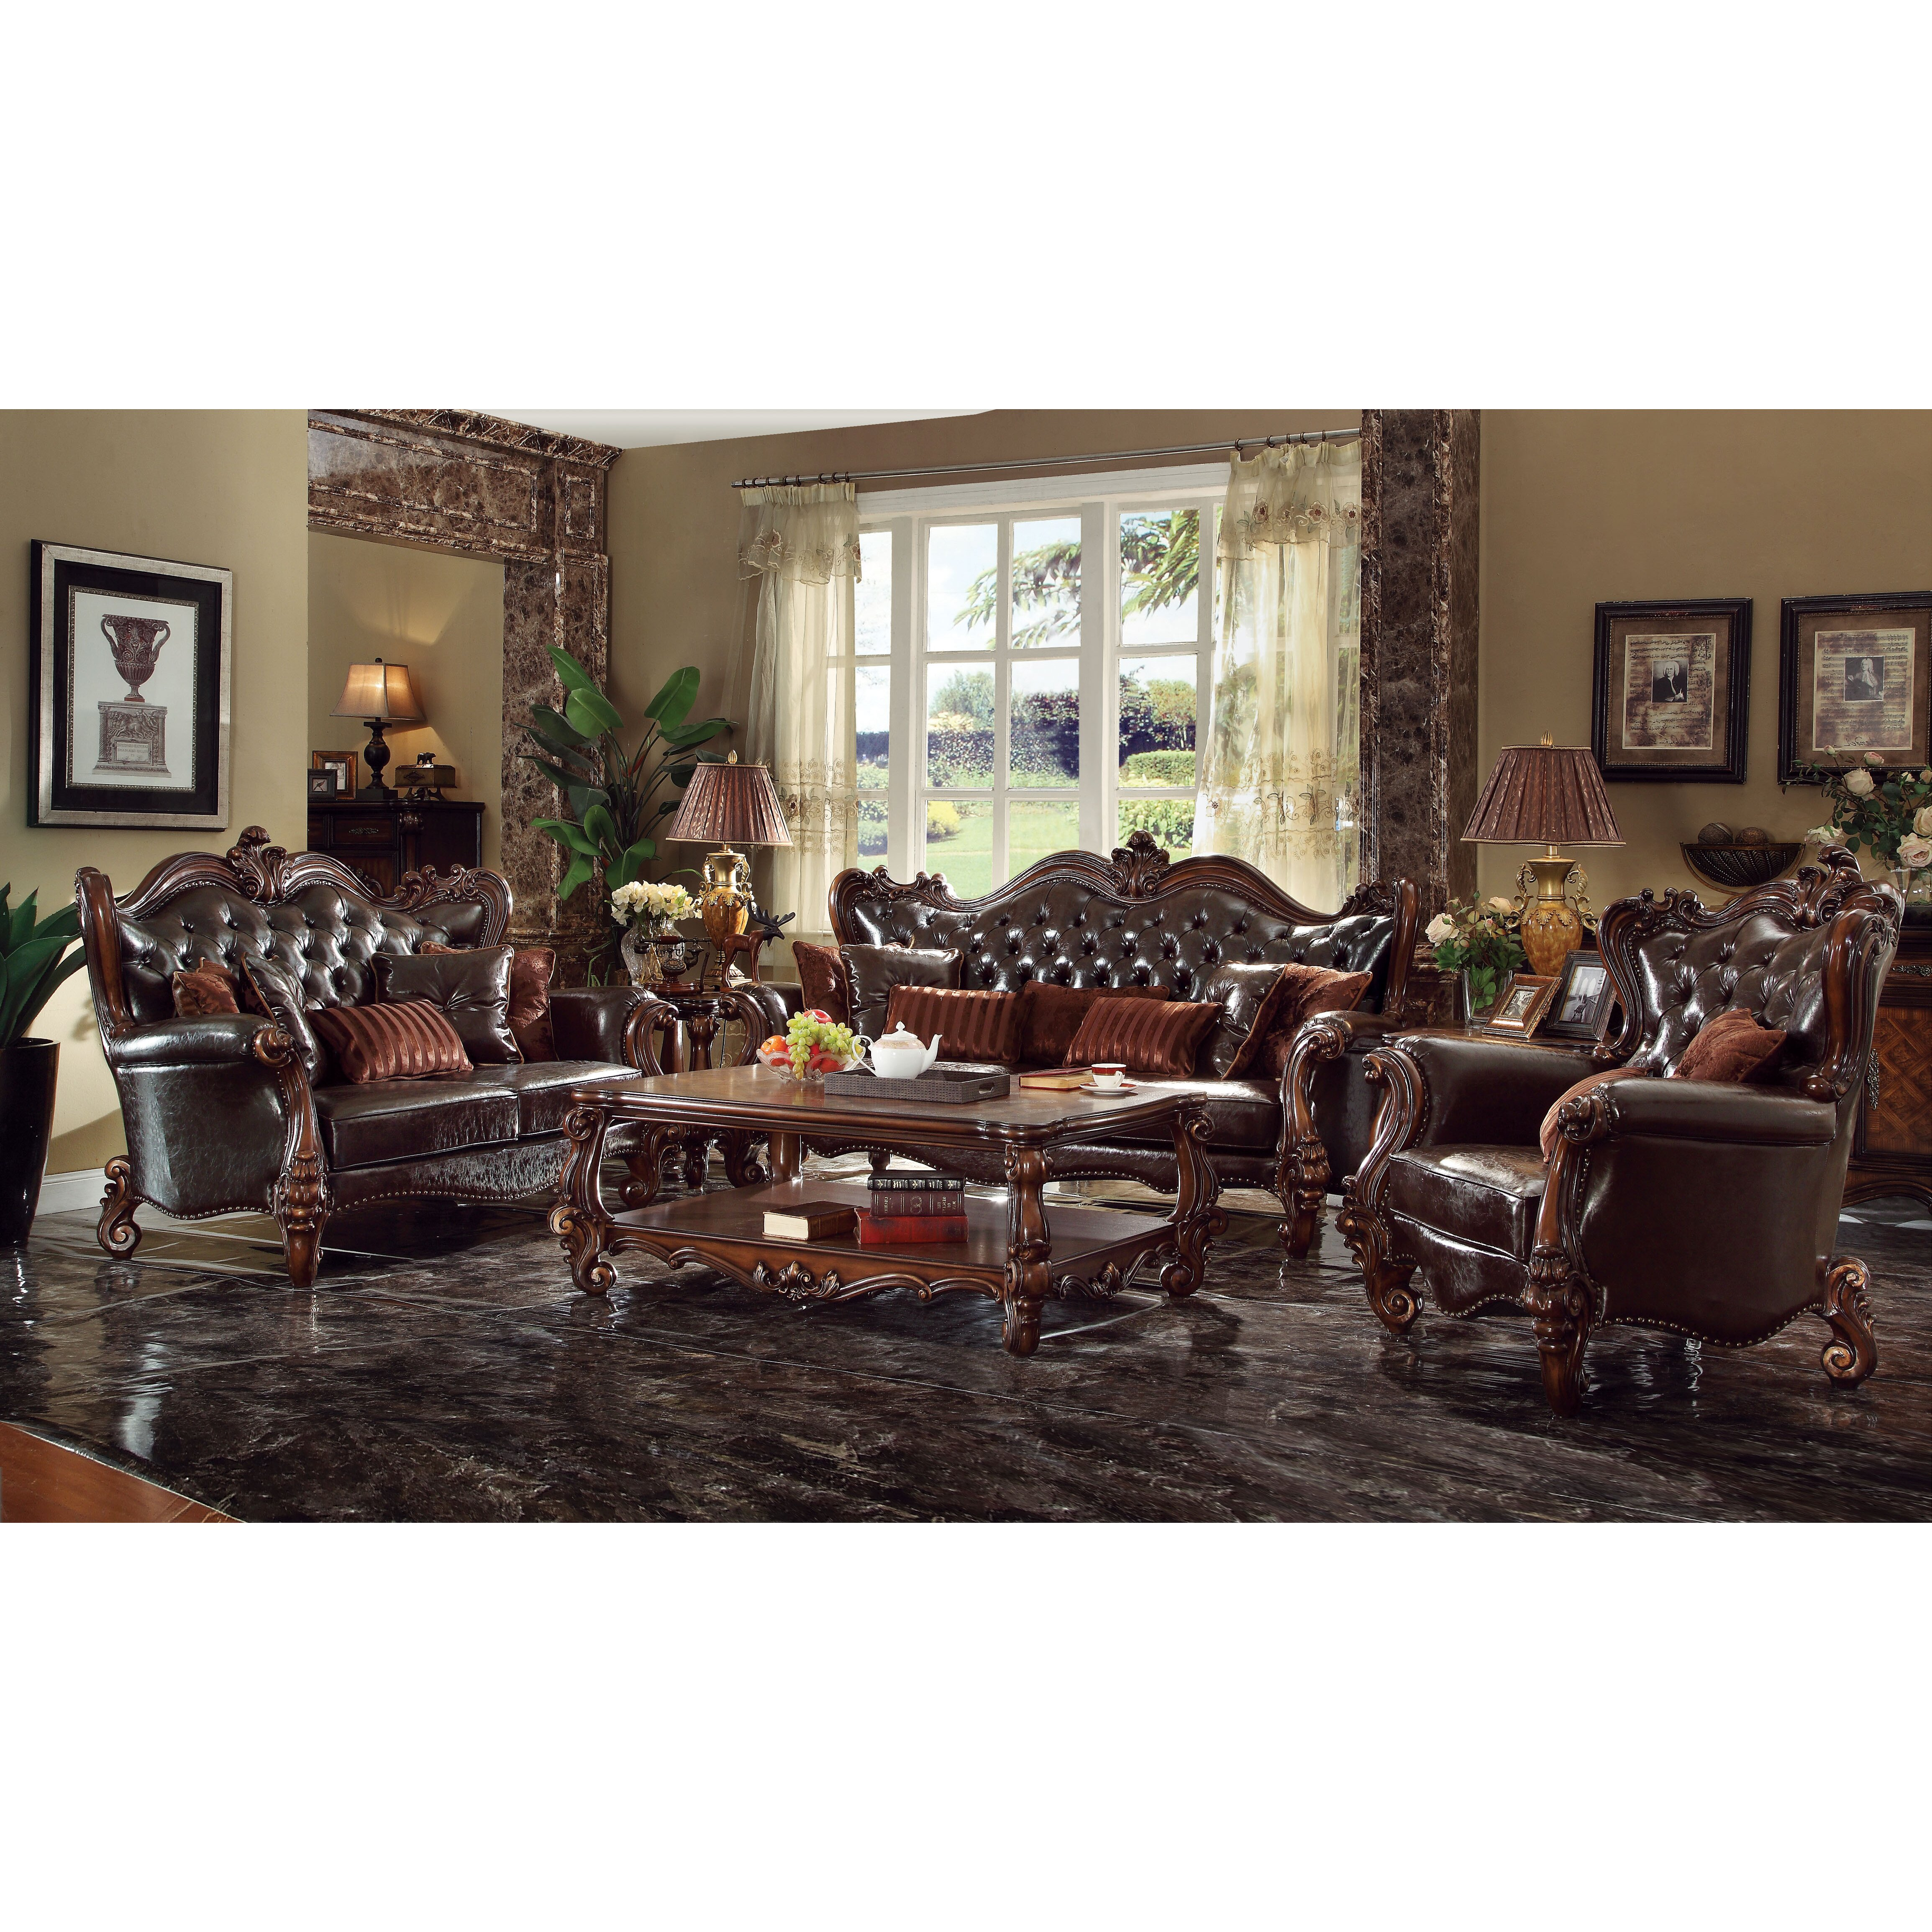 Living Room Collection Furniture Acme Furniture Versailles Living Room Collection Wayfair